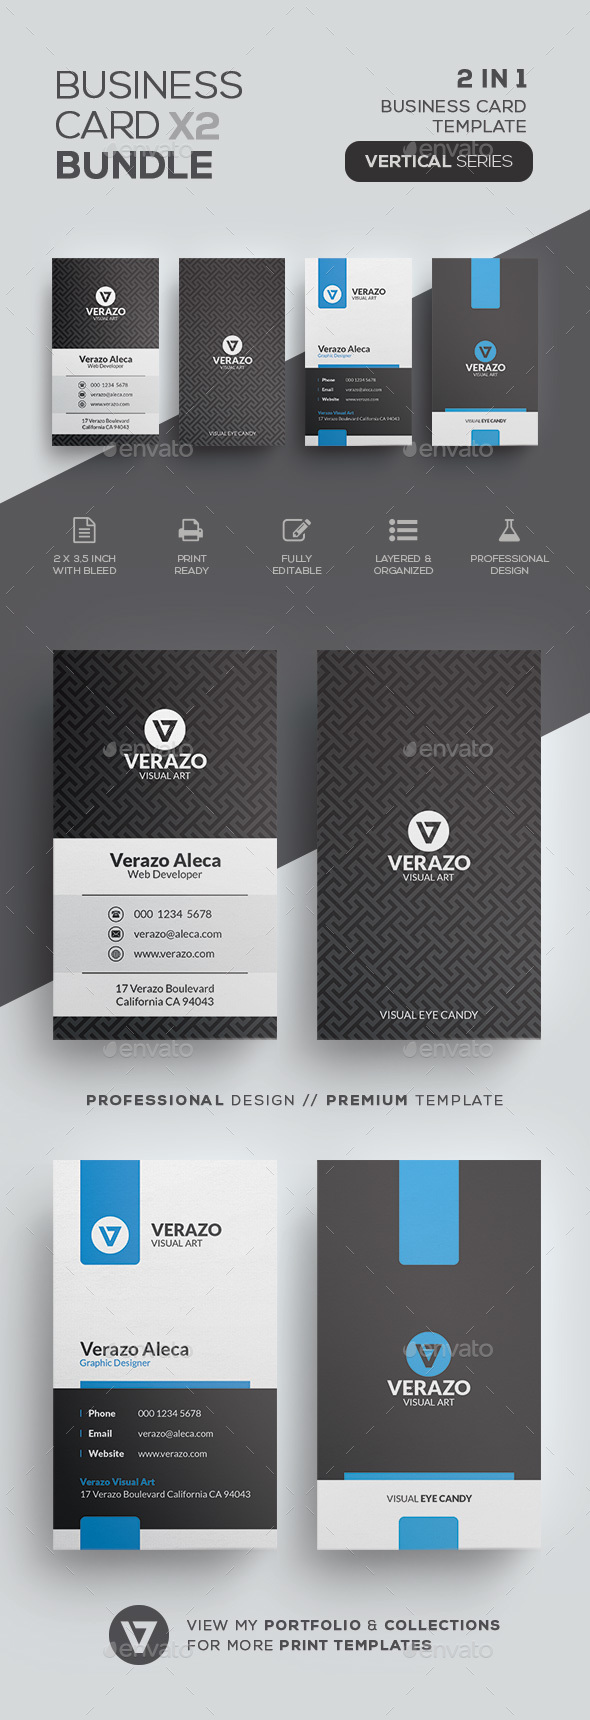 business card templates designs from graphicriver - Template For Business Cards